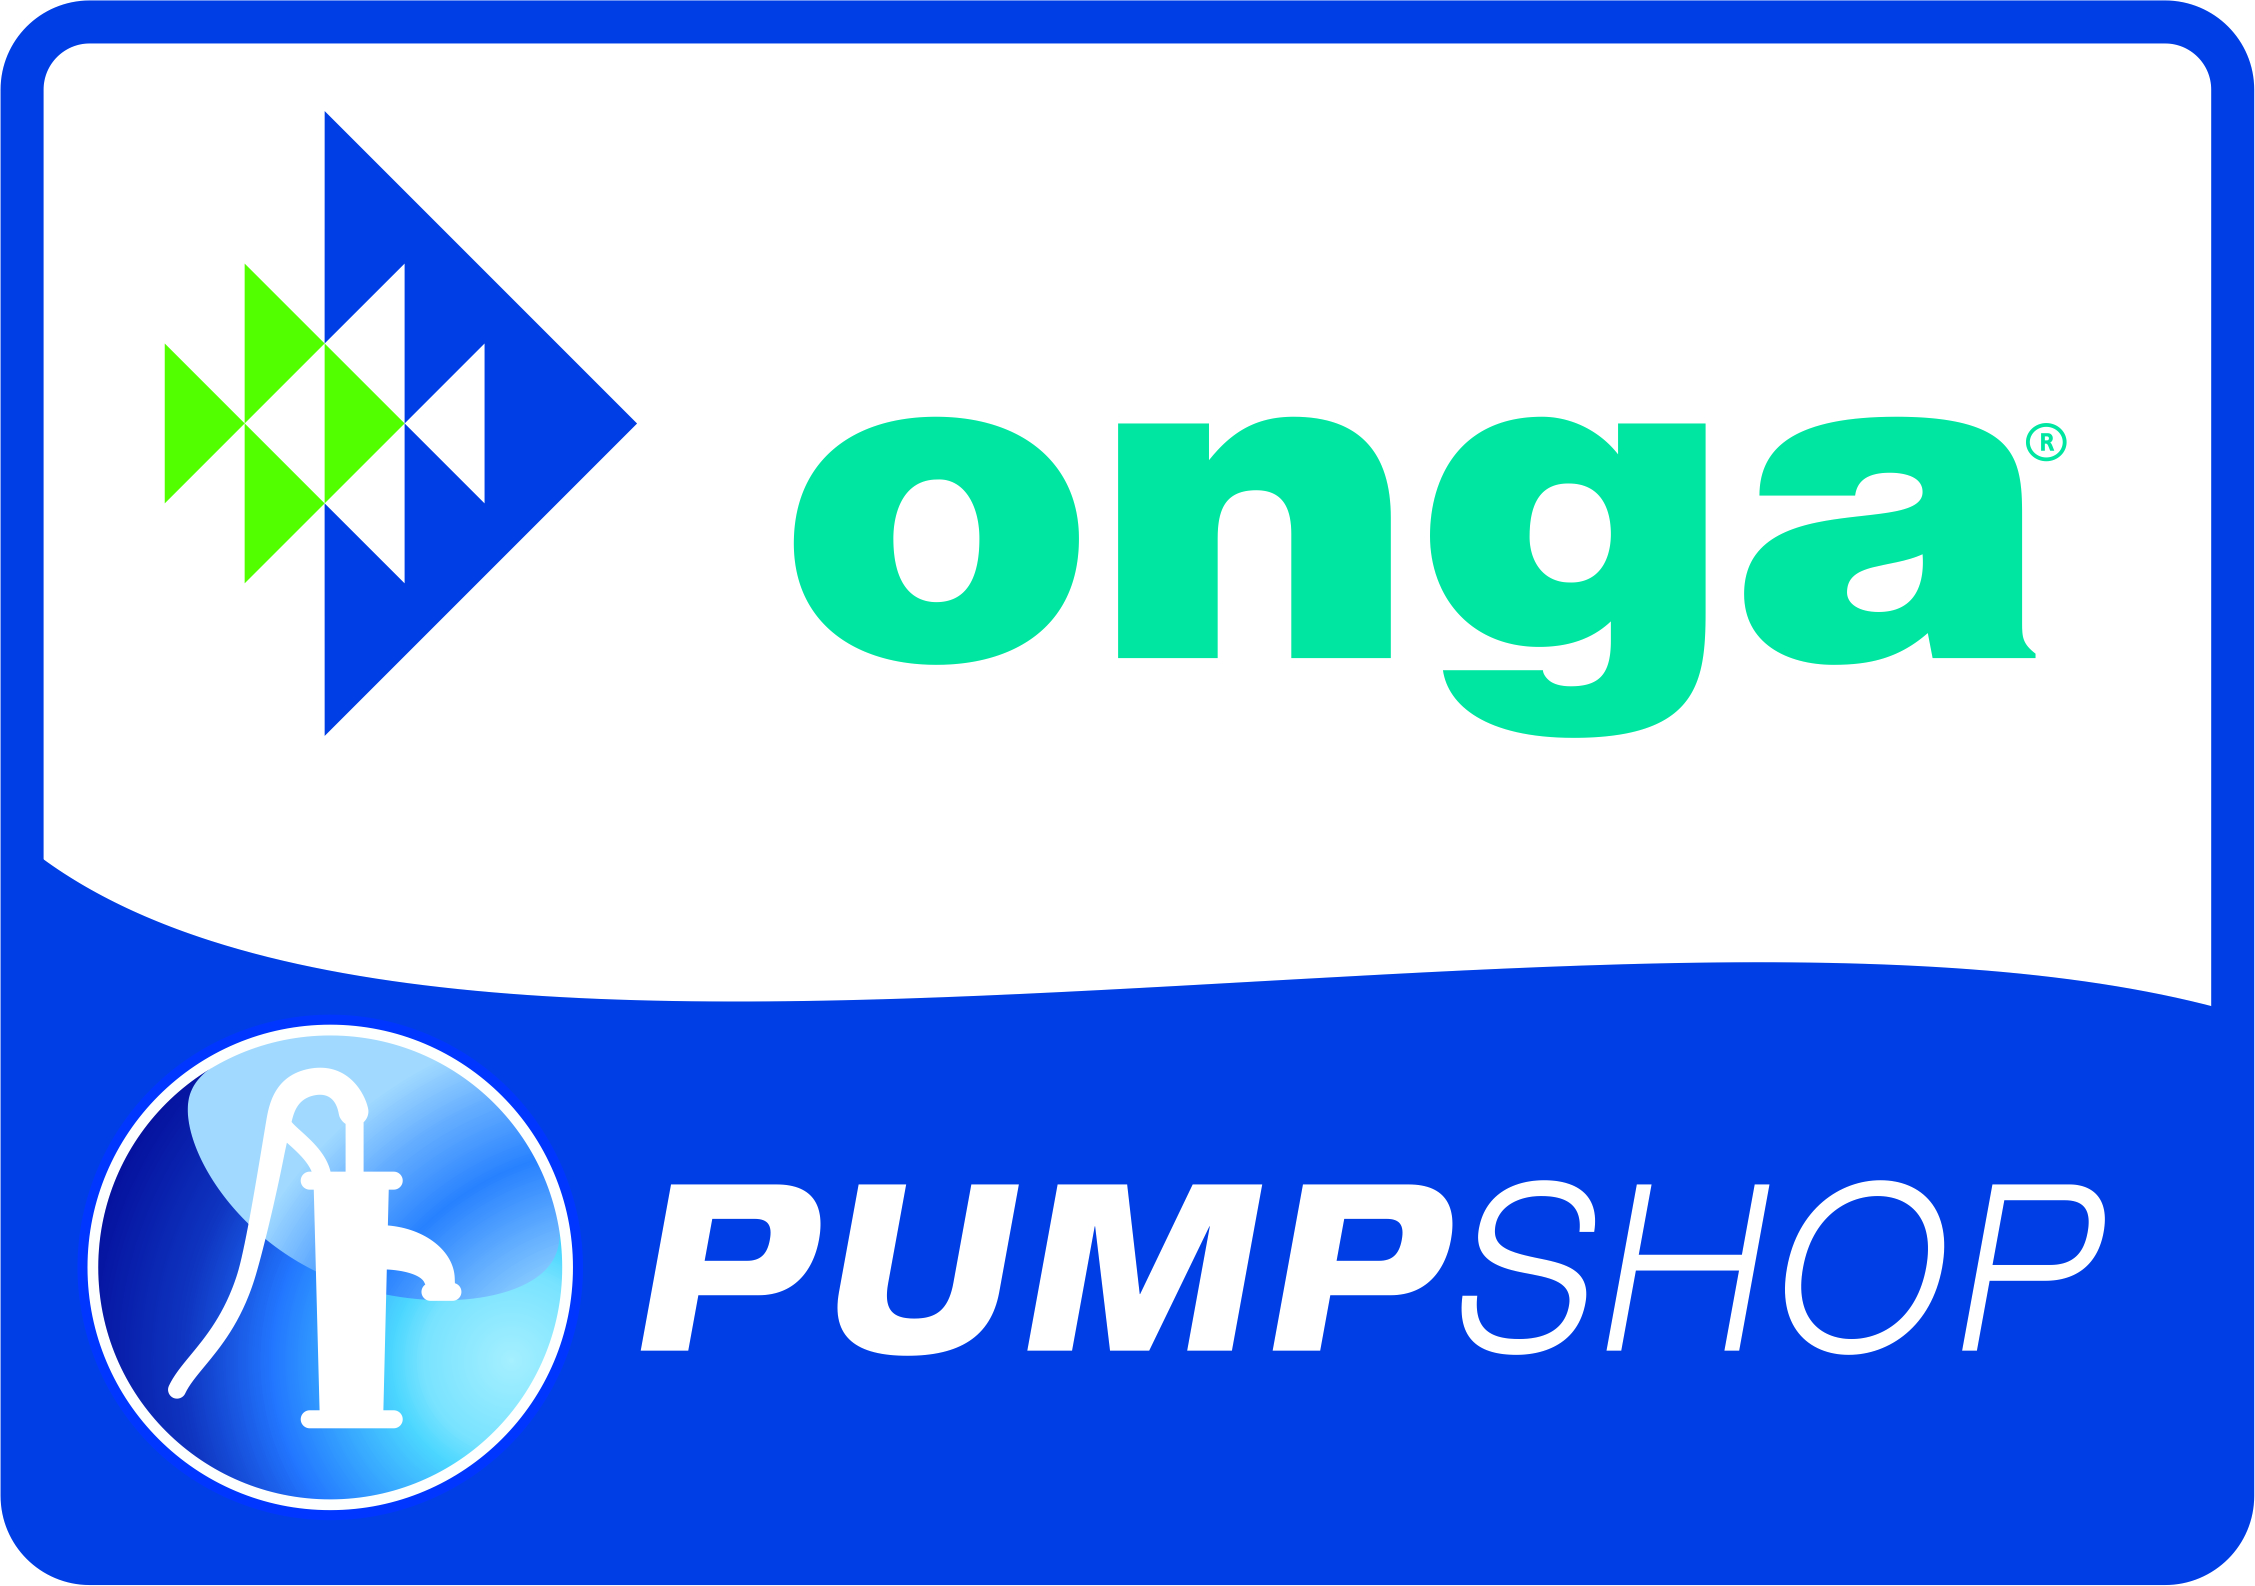 pumpshop logo